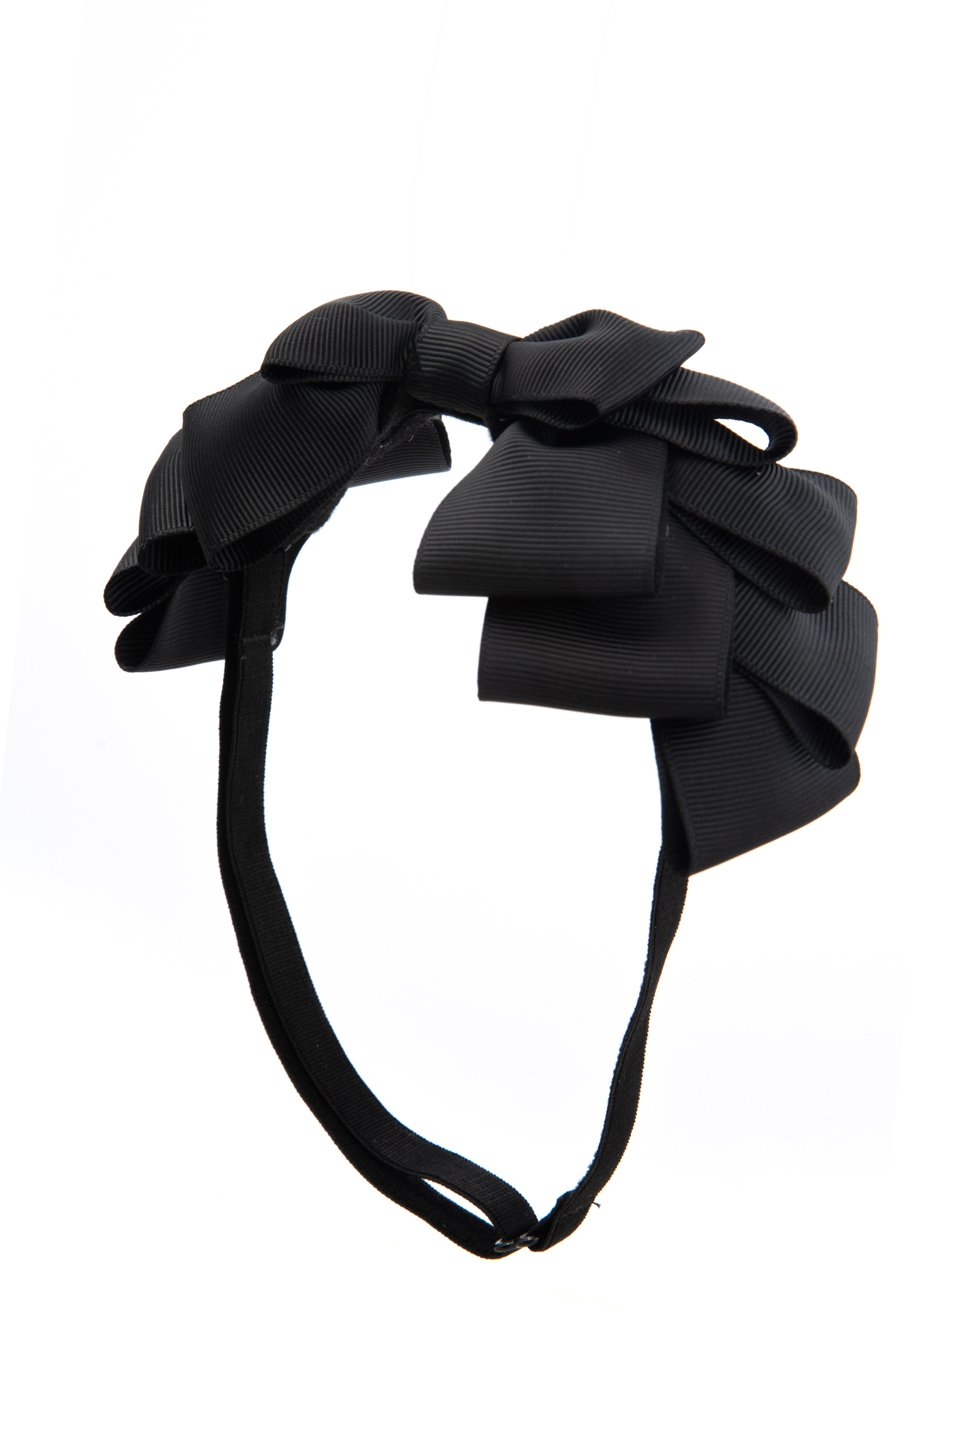 Pleated Ribbon Grosgrain Wrap - Black - PROJECT 6, modest fashion